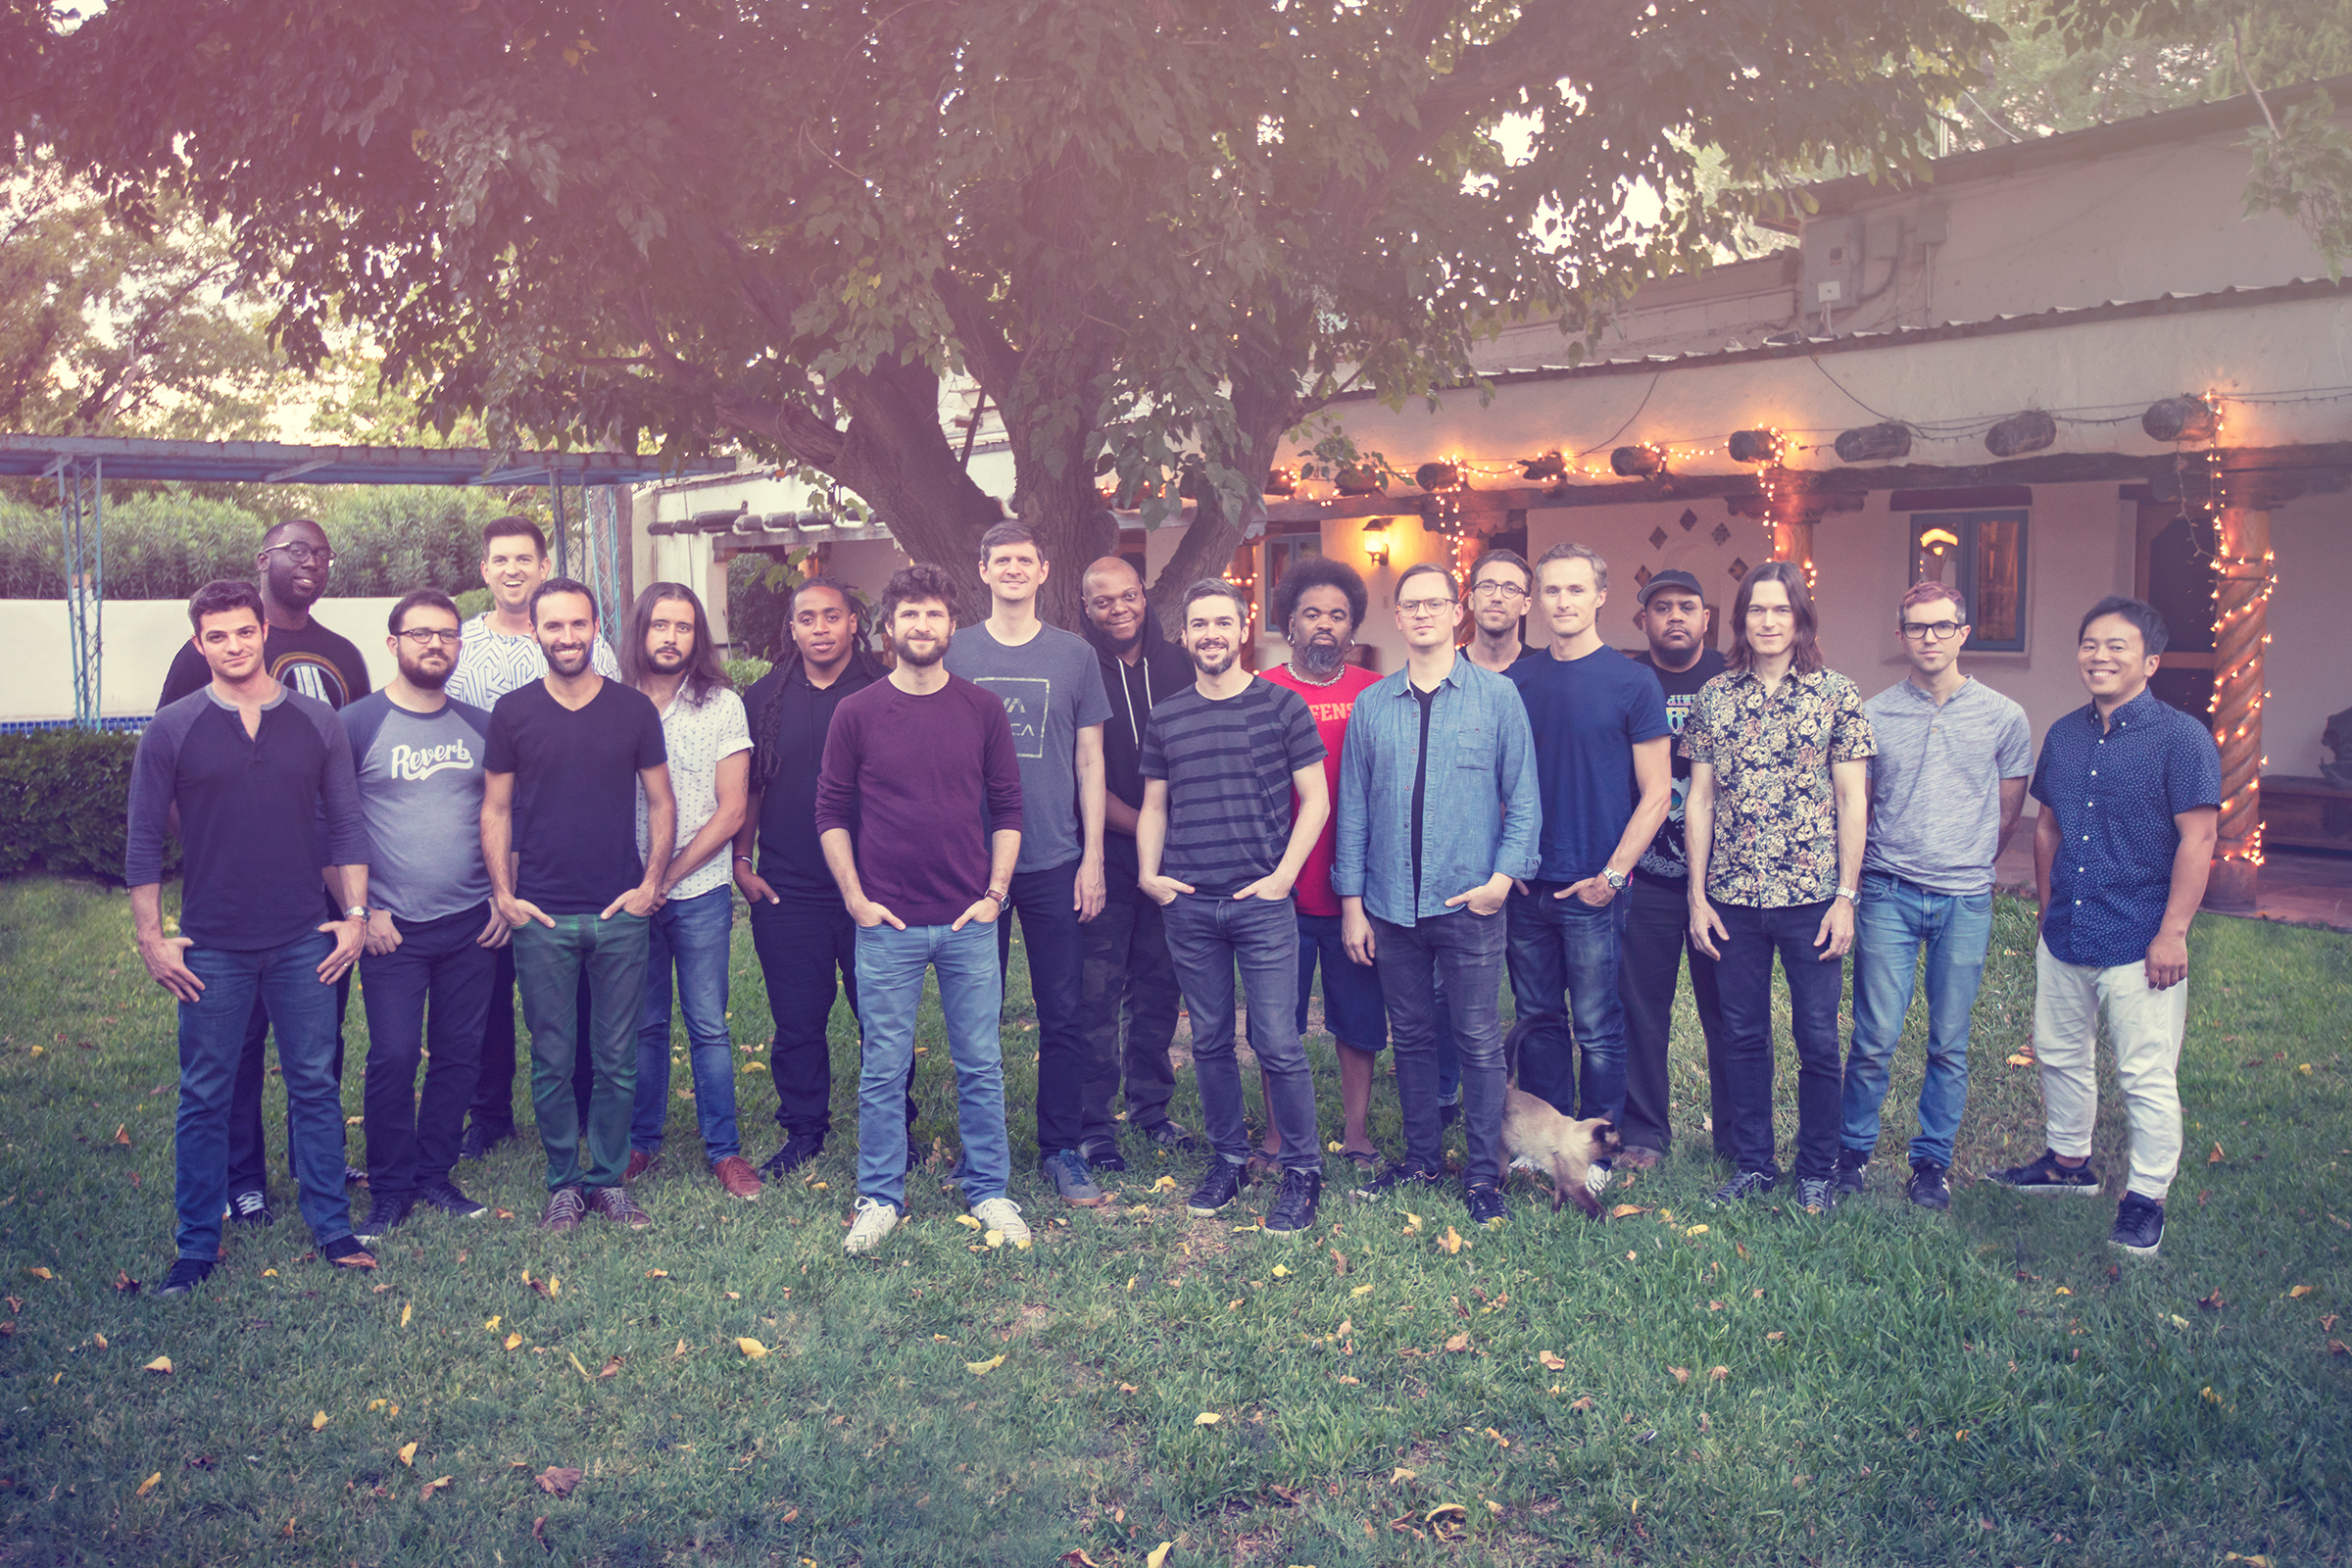 Snarky Puppy's Michael League on the Joyfully Eclectic Group's Latest Evolution